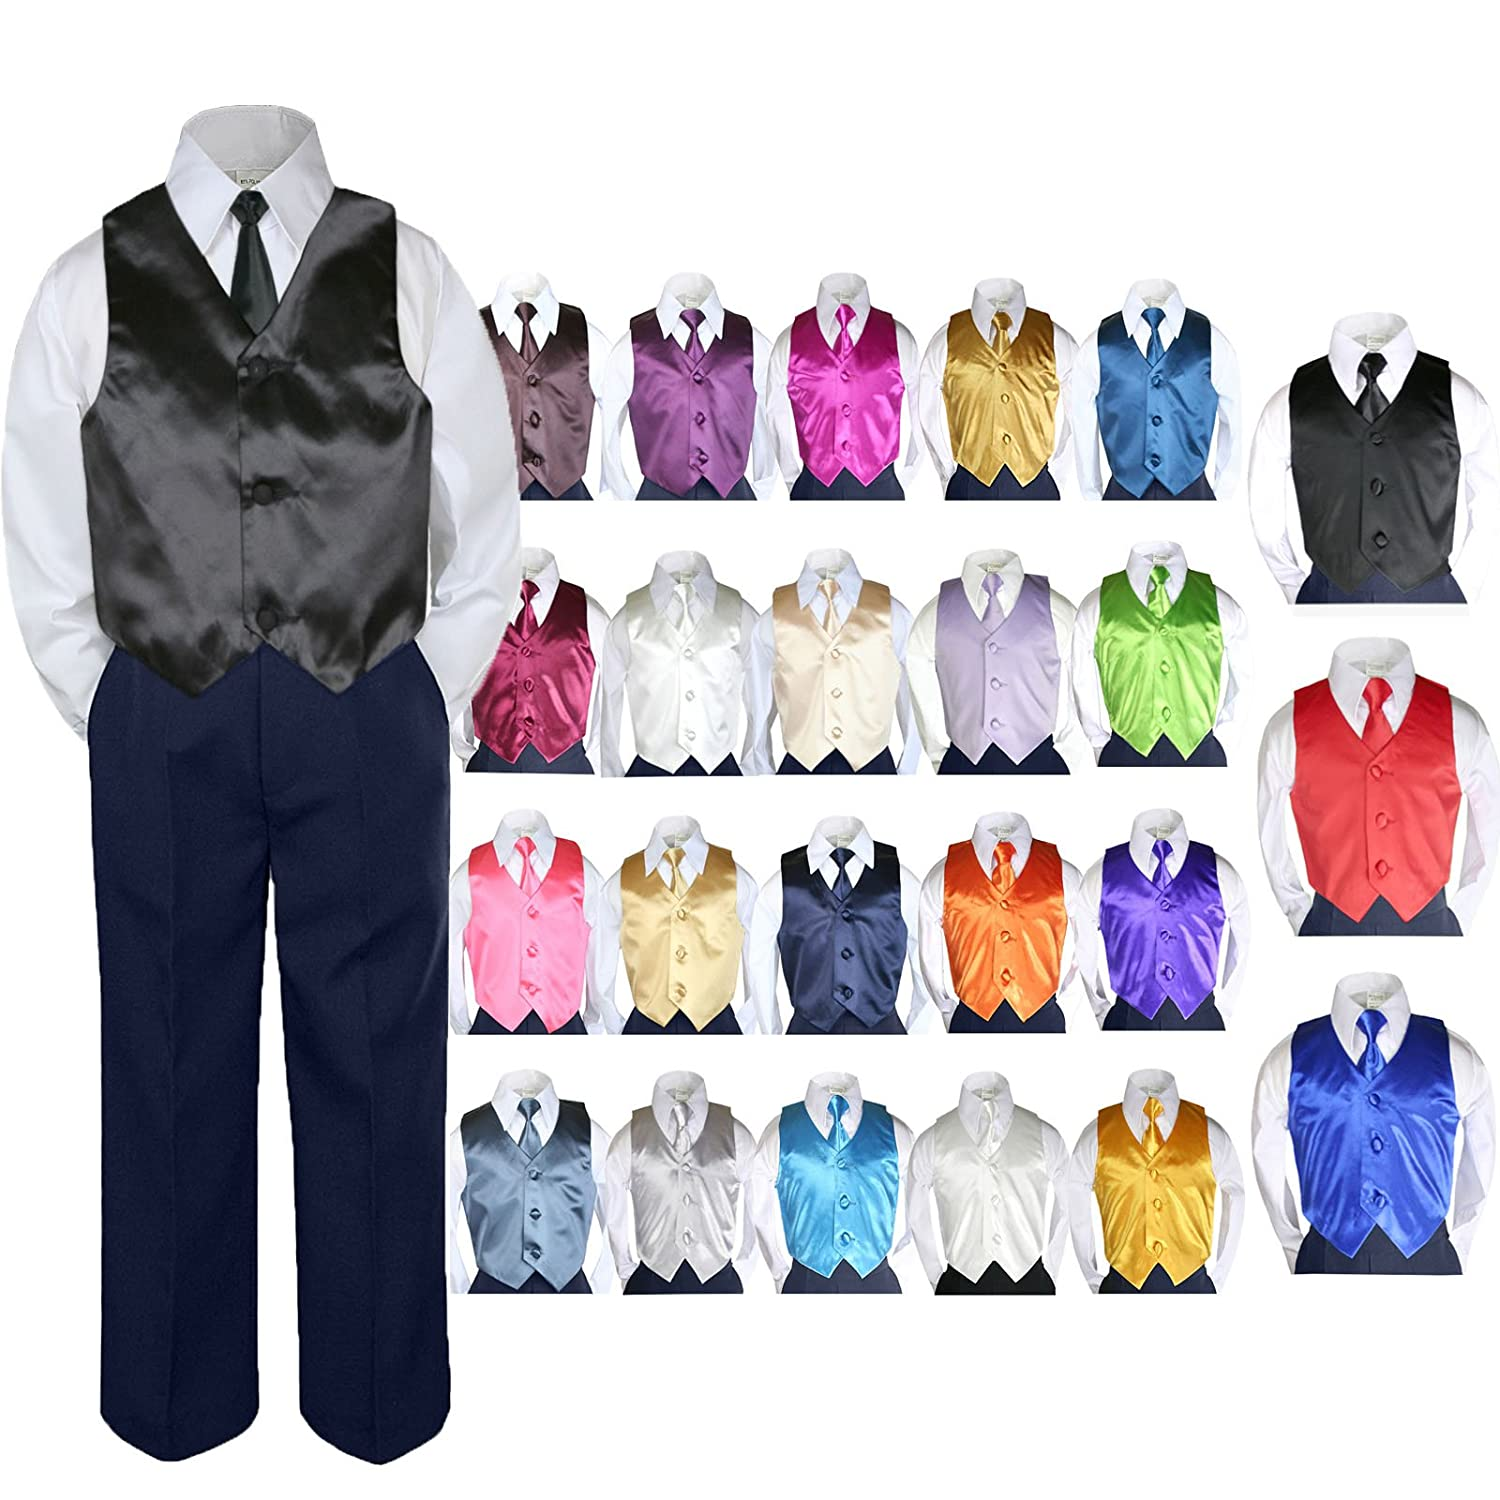 4pc Baby Toddler Boy Formal Suit Tuxedo NAVY Pants Shirt Vest Necktie Set Sm-4T